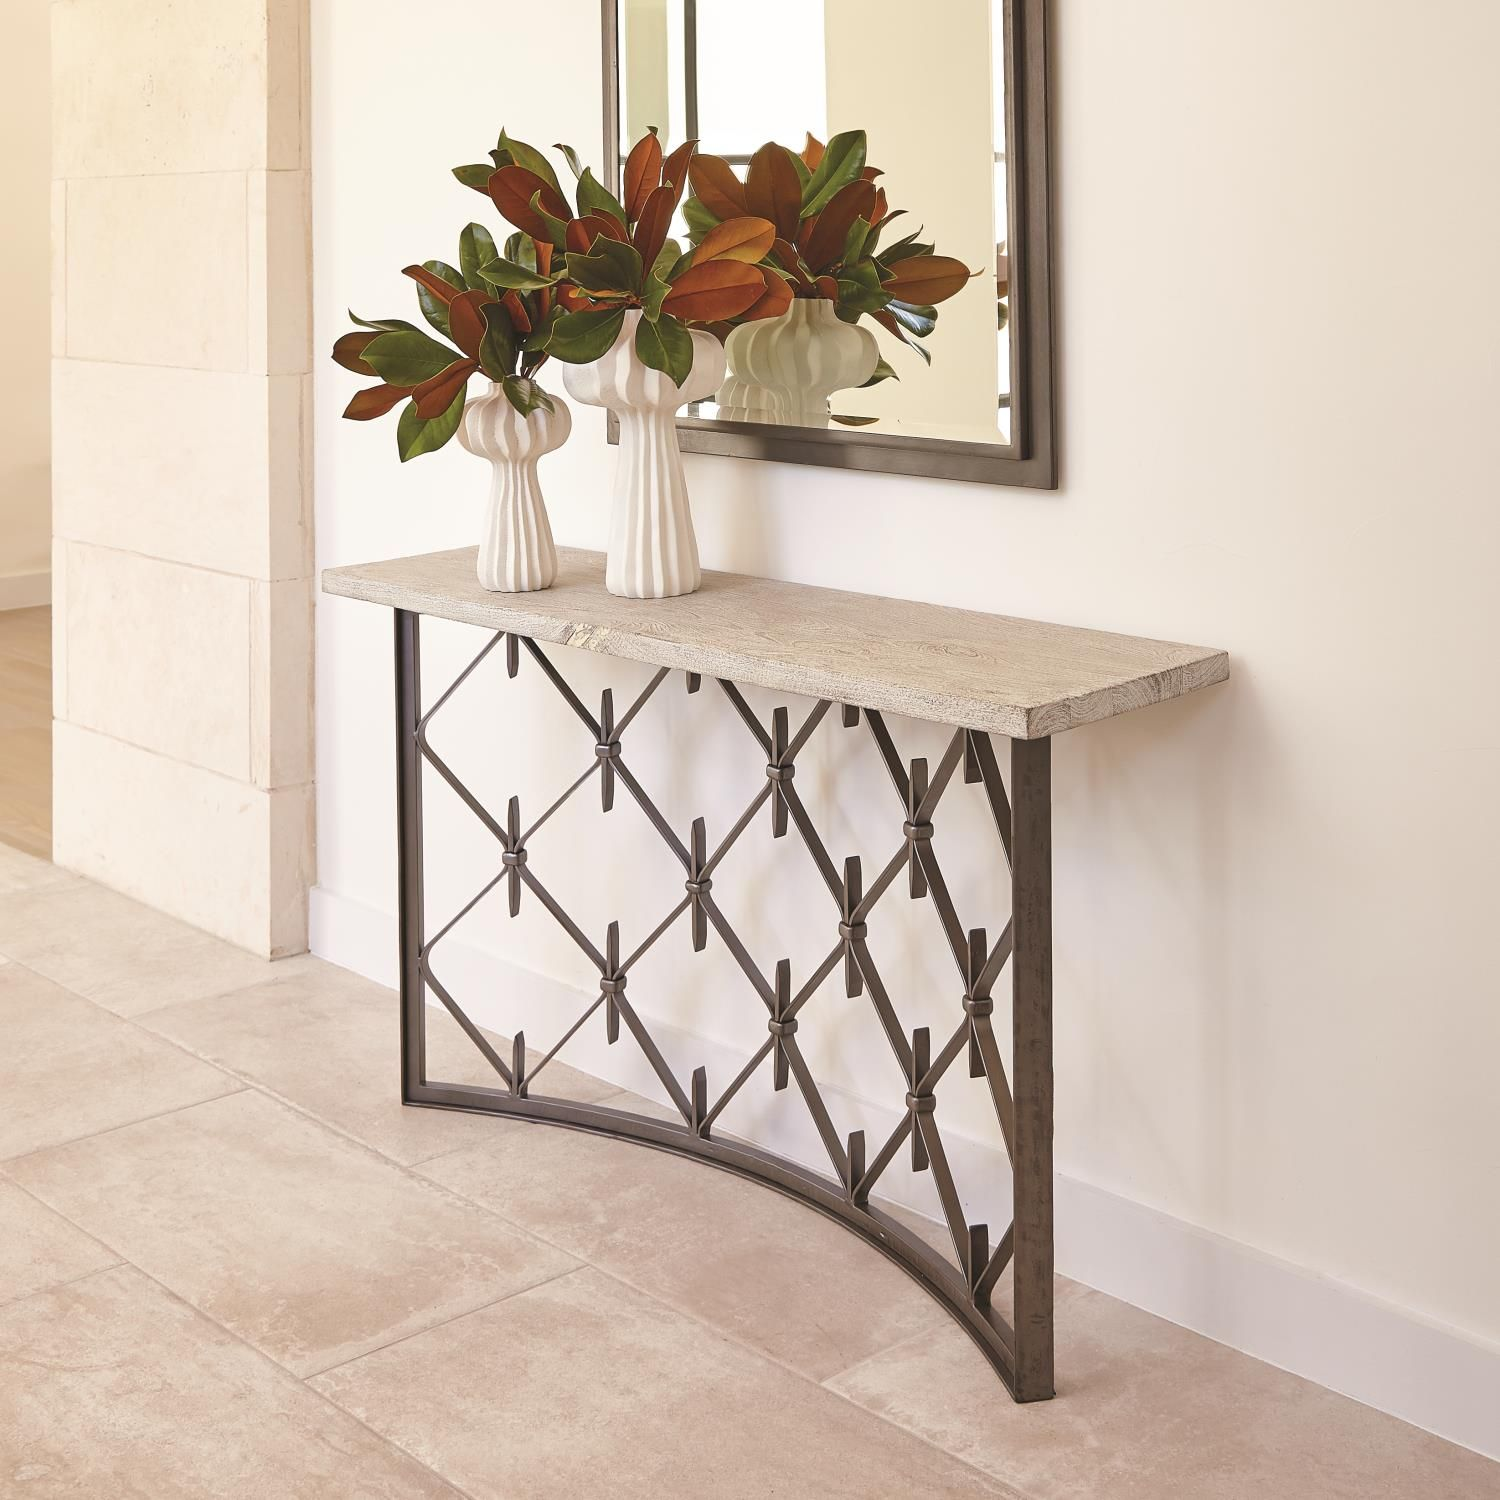 Sidney Console Natural Iron Plank Top Global Views60 W X 33 H X 16 Deep 133 Lb Wrought Iron Console Table Wood Console Table Wood Console